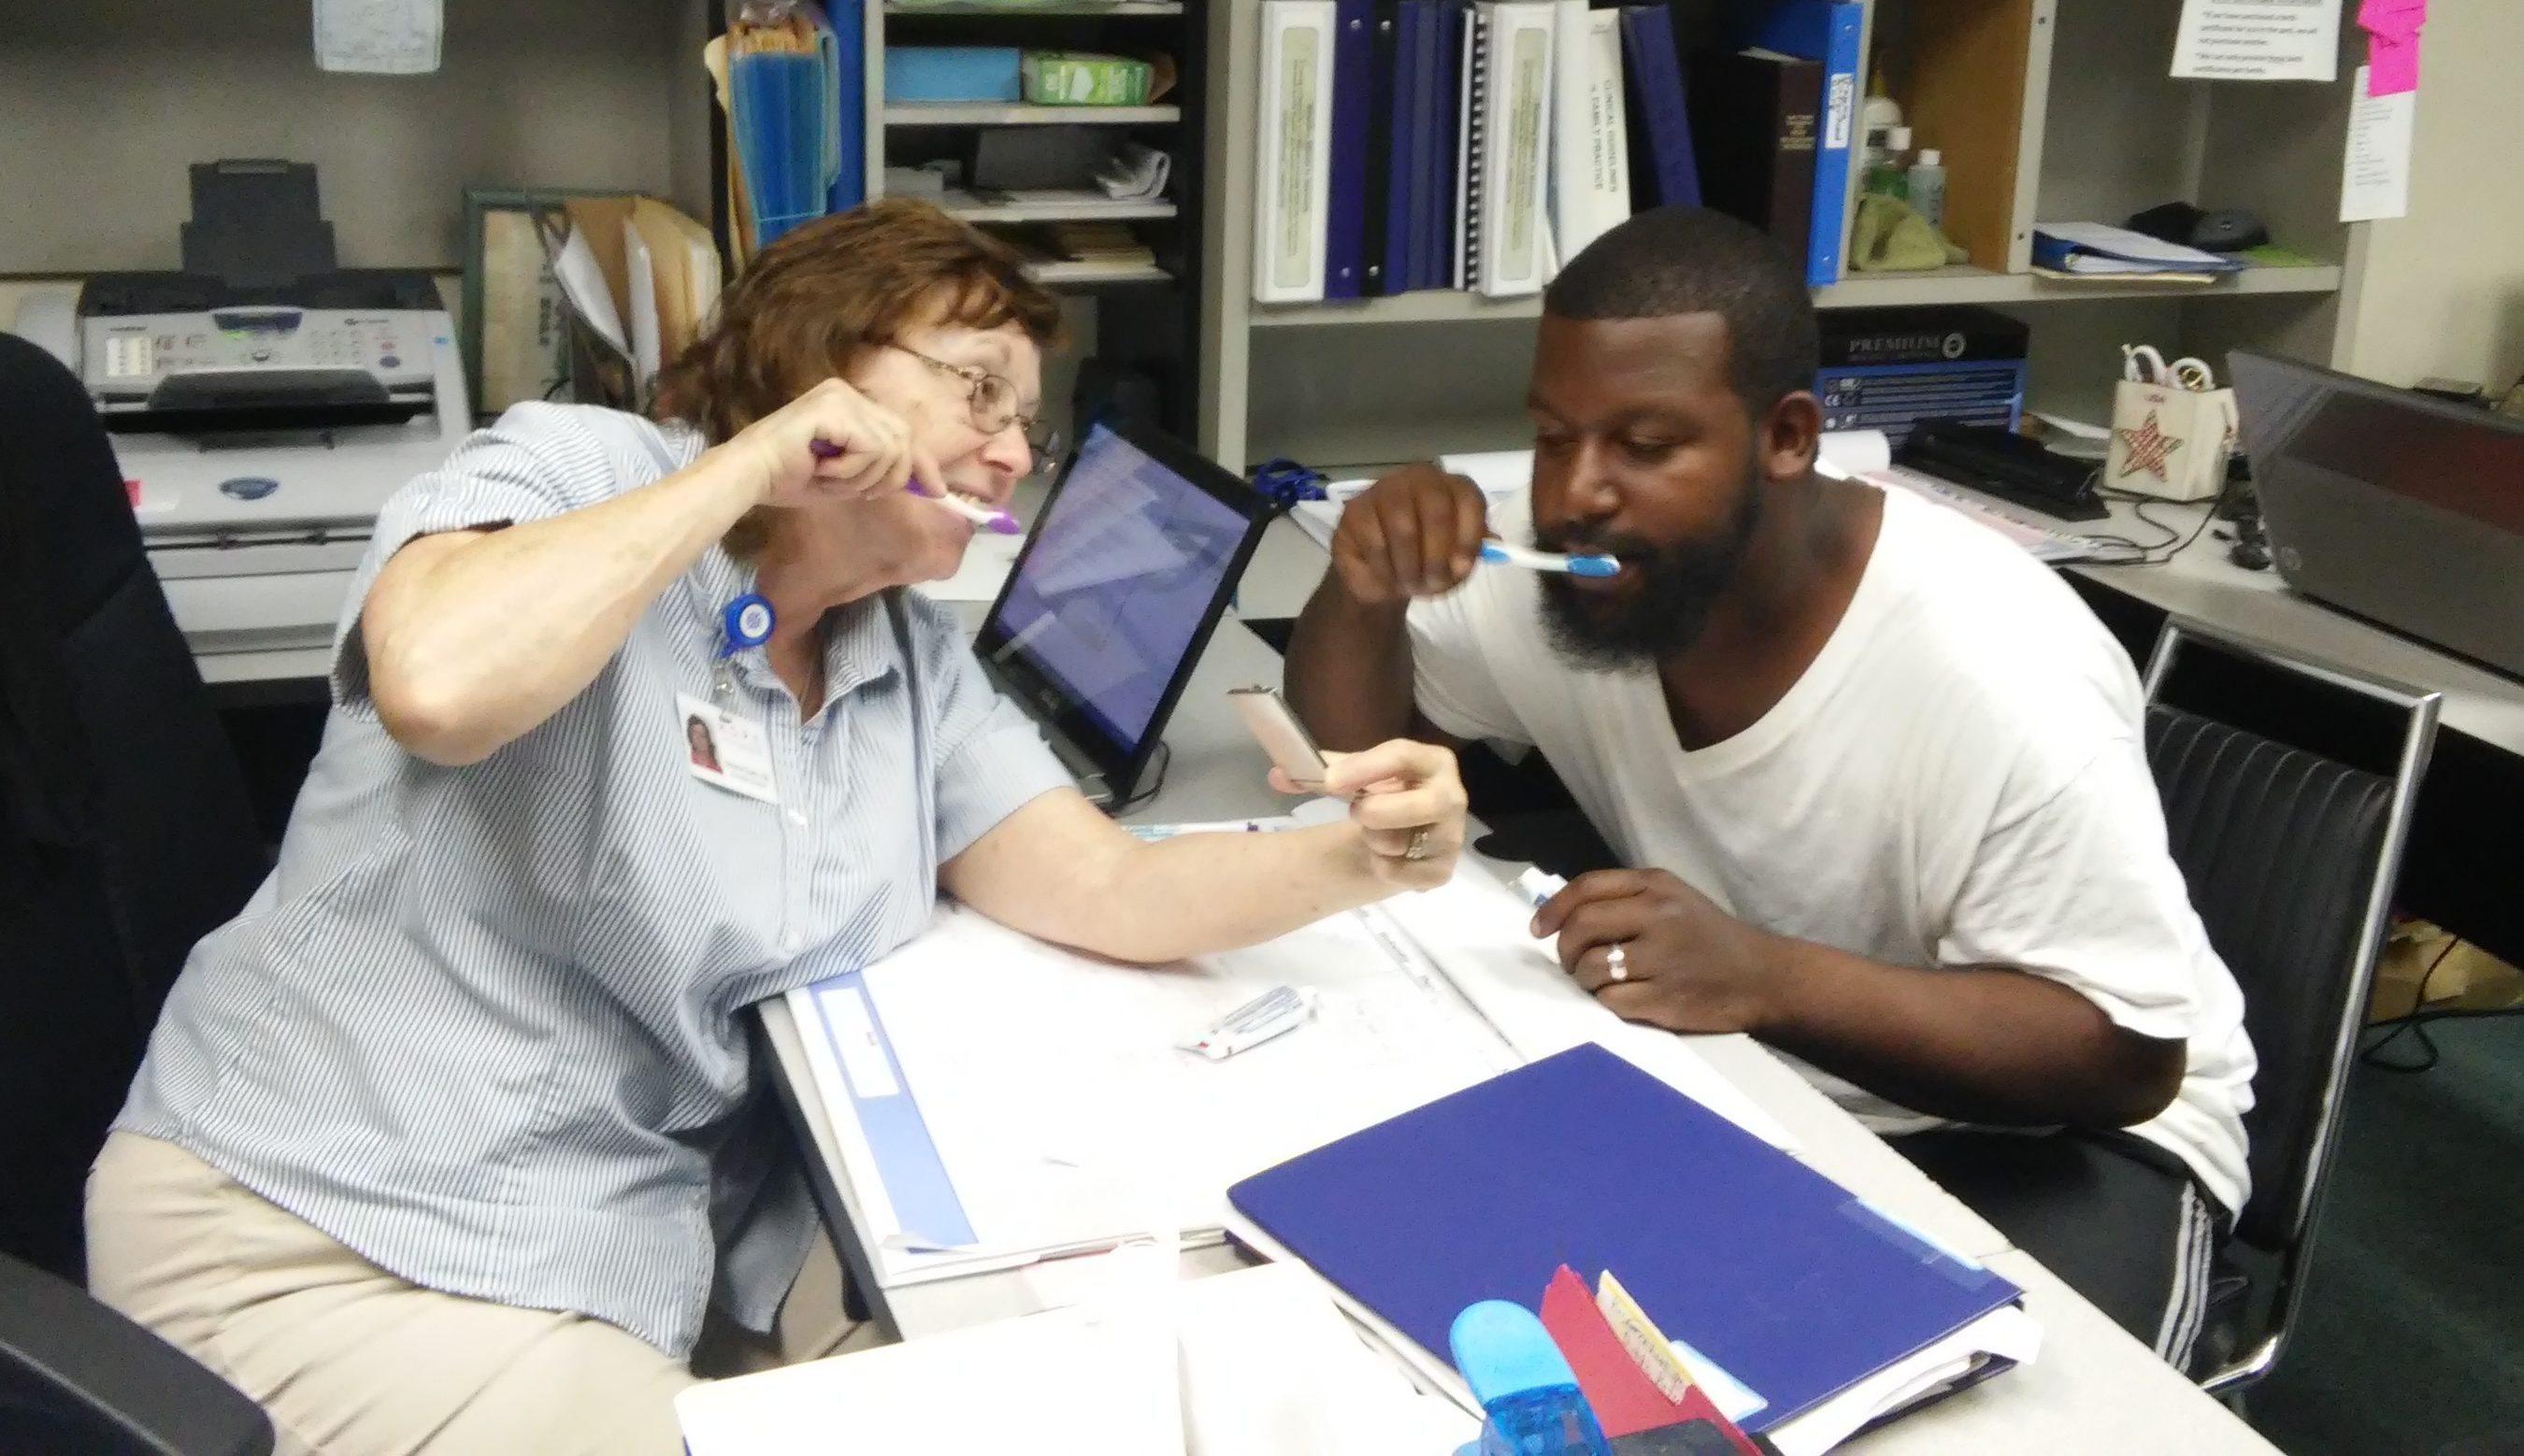 A man and woman at a desk practicing brushing their teeth